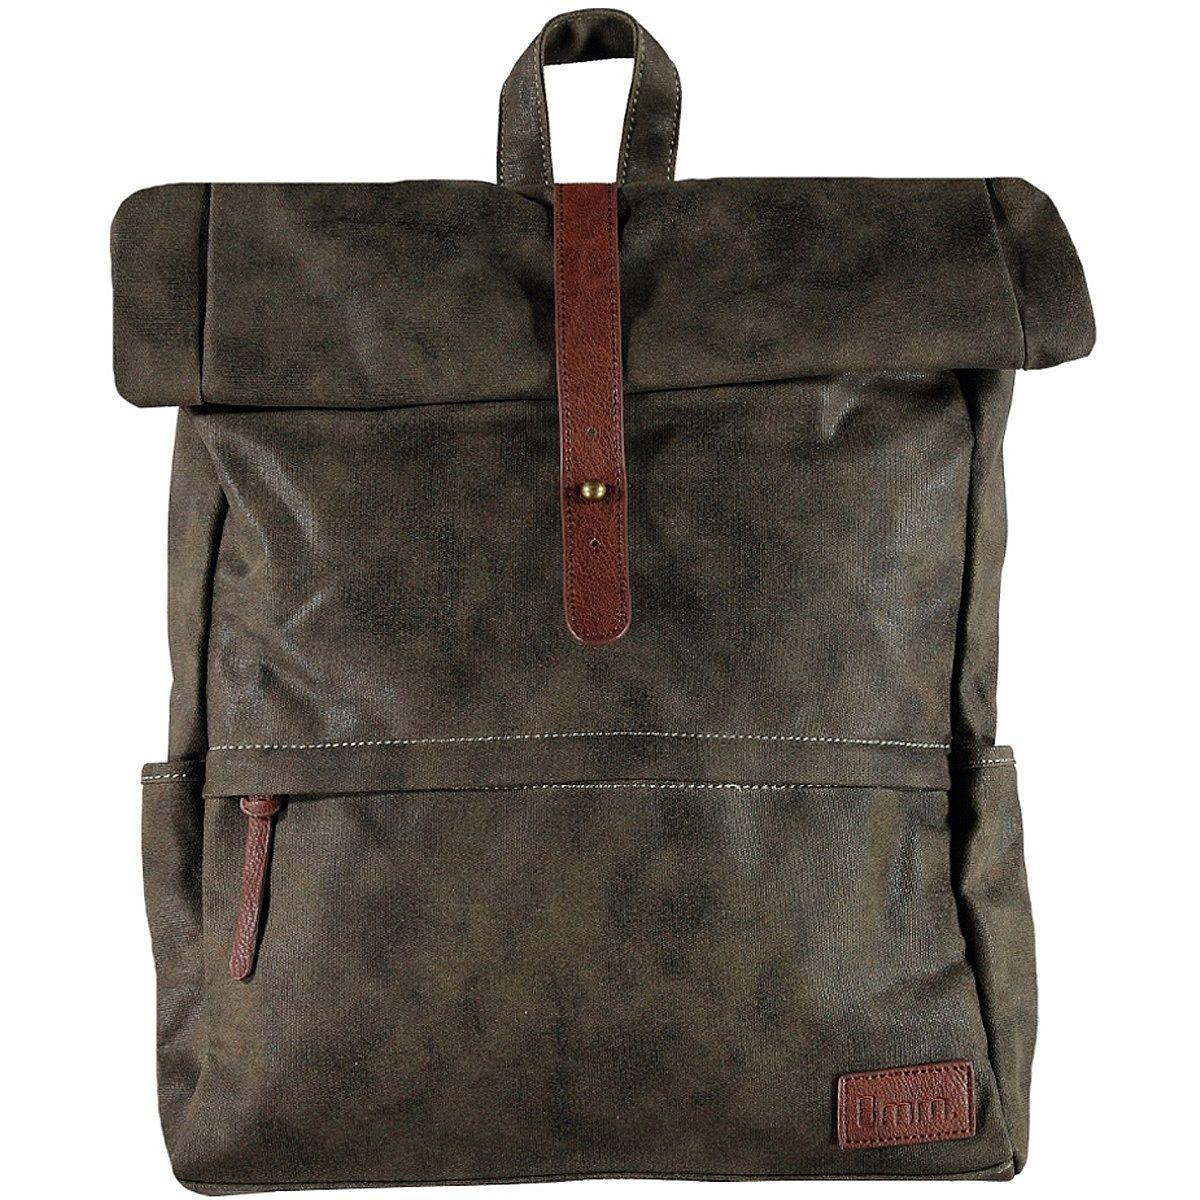 8MM. Backpack canvas, dk green